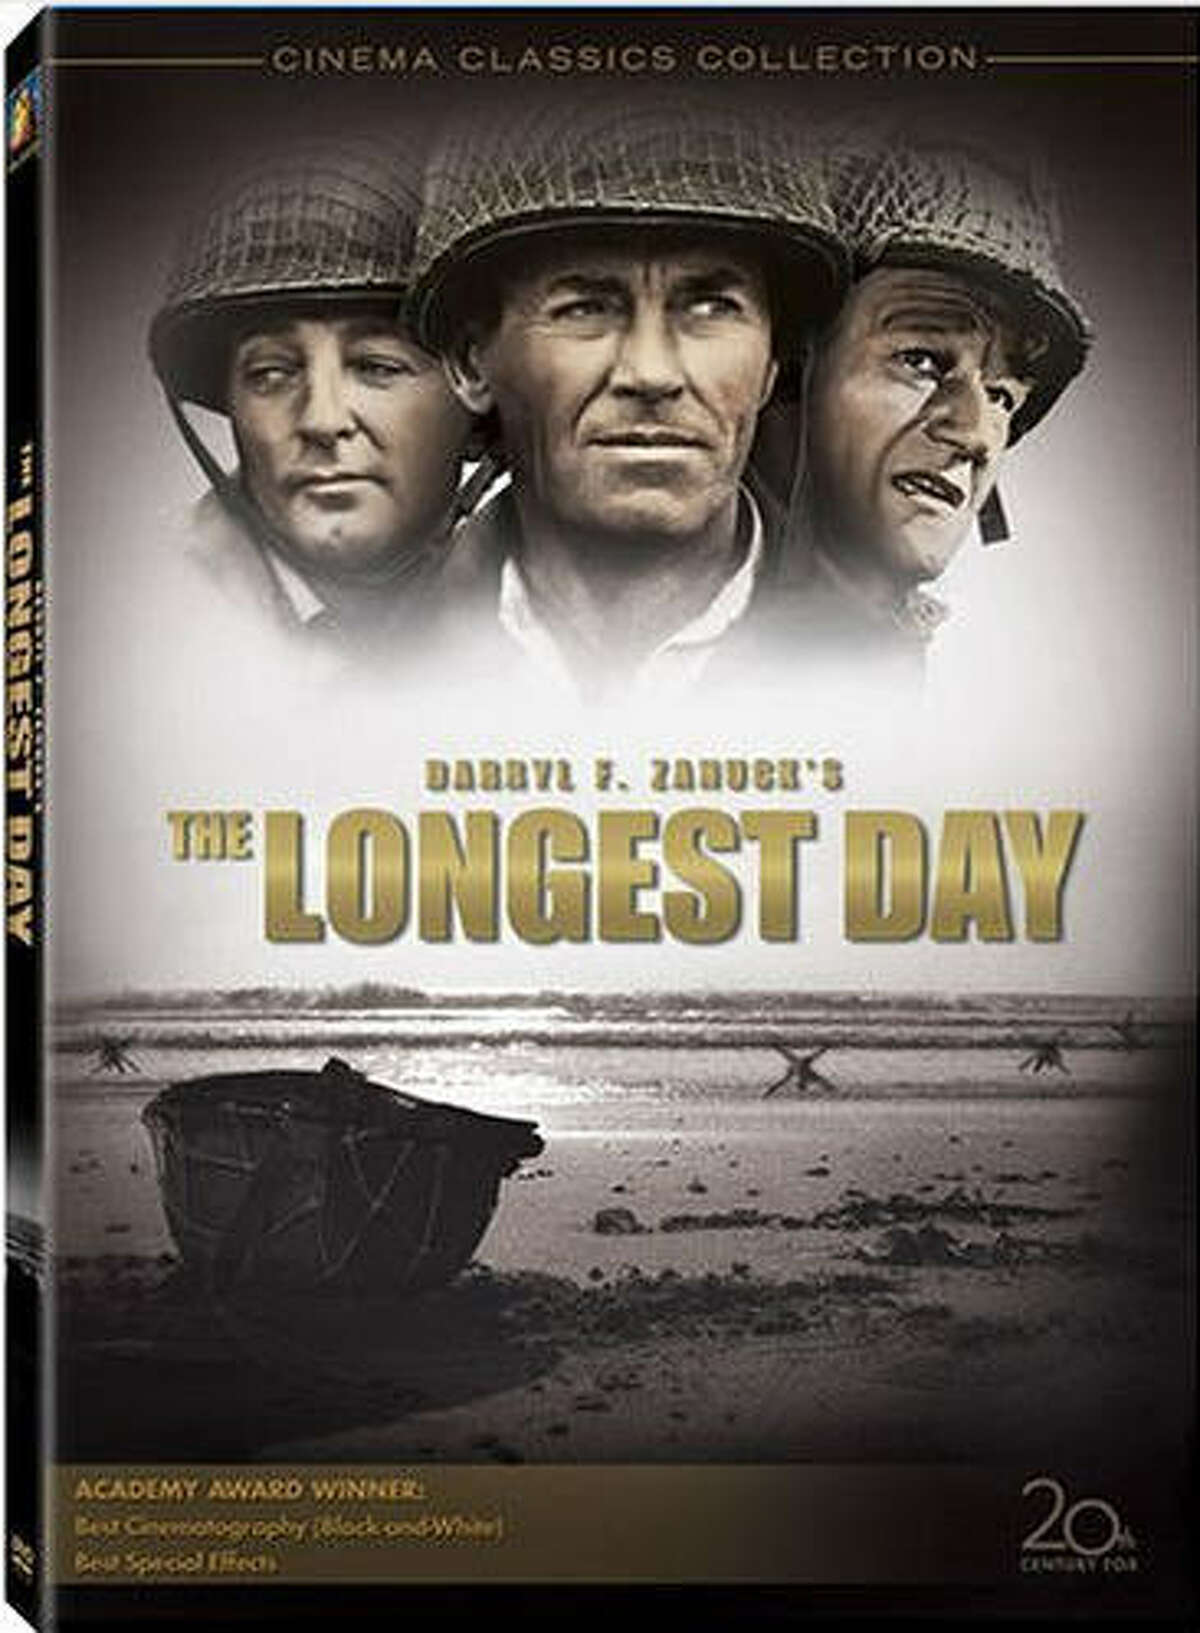 """""""The Longest Day"""" Plot: The Allied Forces land in Normandy, France for D-Day. American Themes: Being John Wayne, Fighting for Your Country, Winning Dubya-Dubya-Two, Waving the Flag, Fighting for What's Right, Being Brave. RottenTomatoes.com Score: 92 percent."""